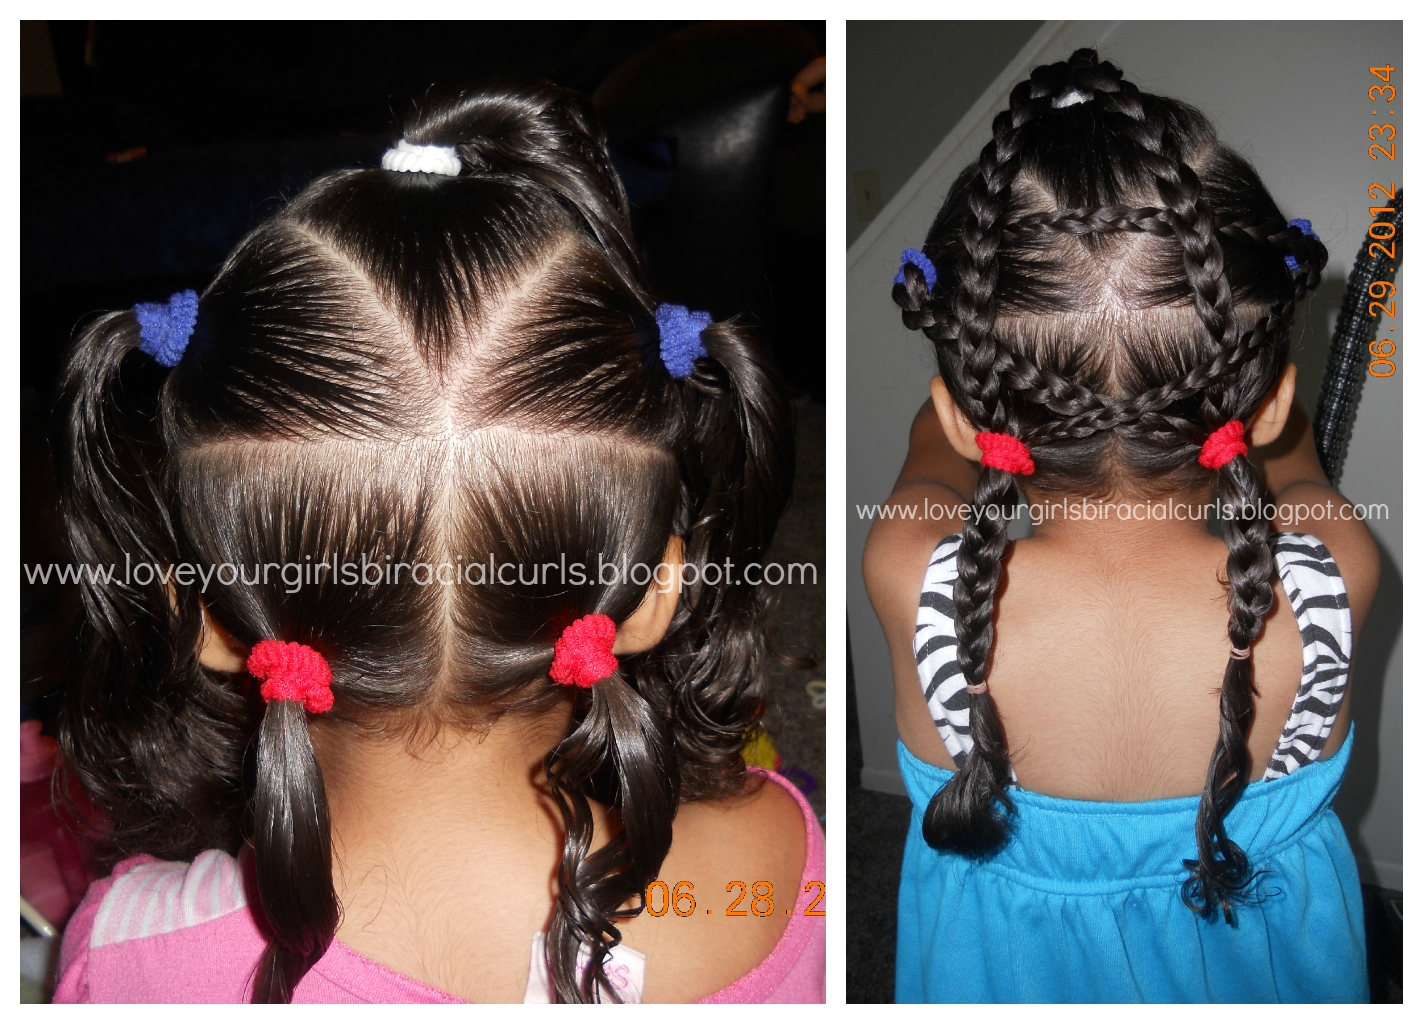 Marvelous 1000 Images About Kids Hair Styles On Pinterest Biracial Hair Short Hairstyles Gunalazisus